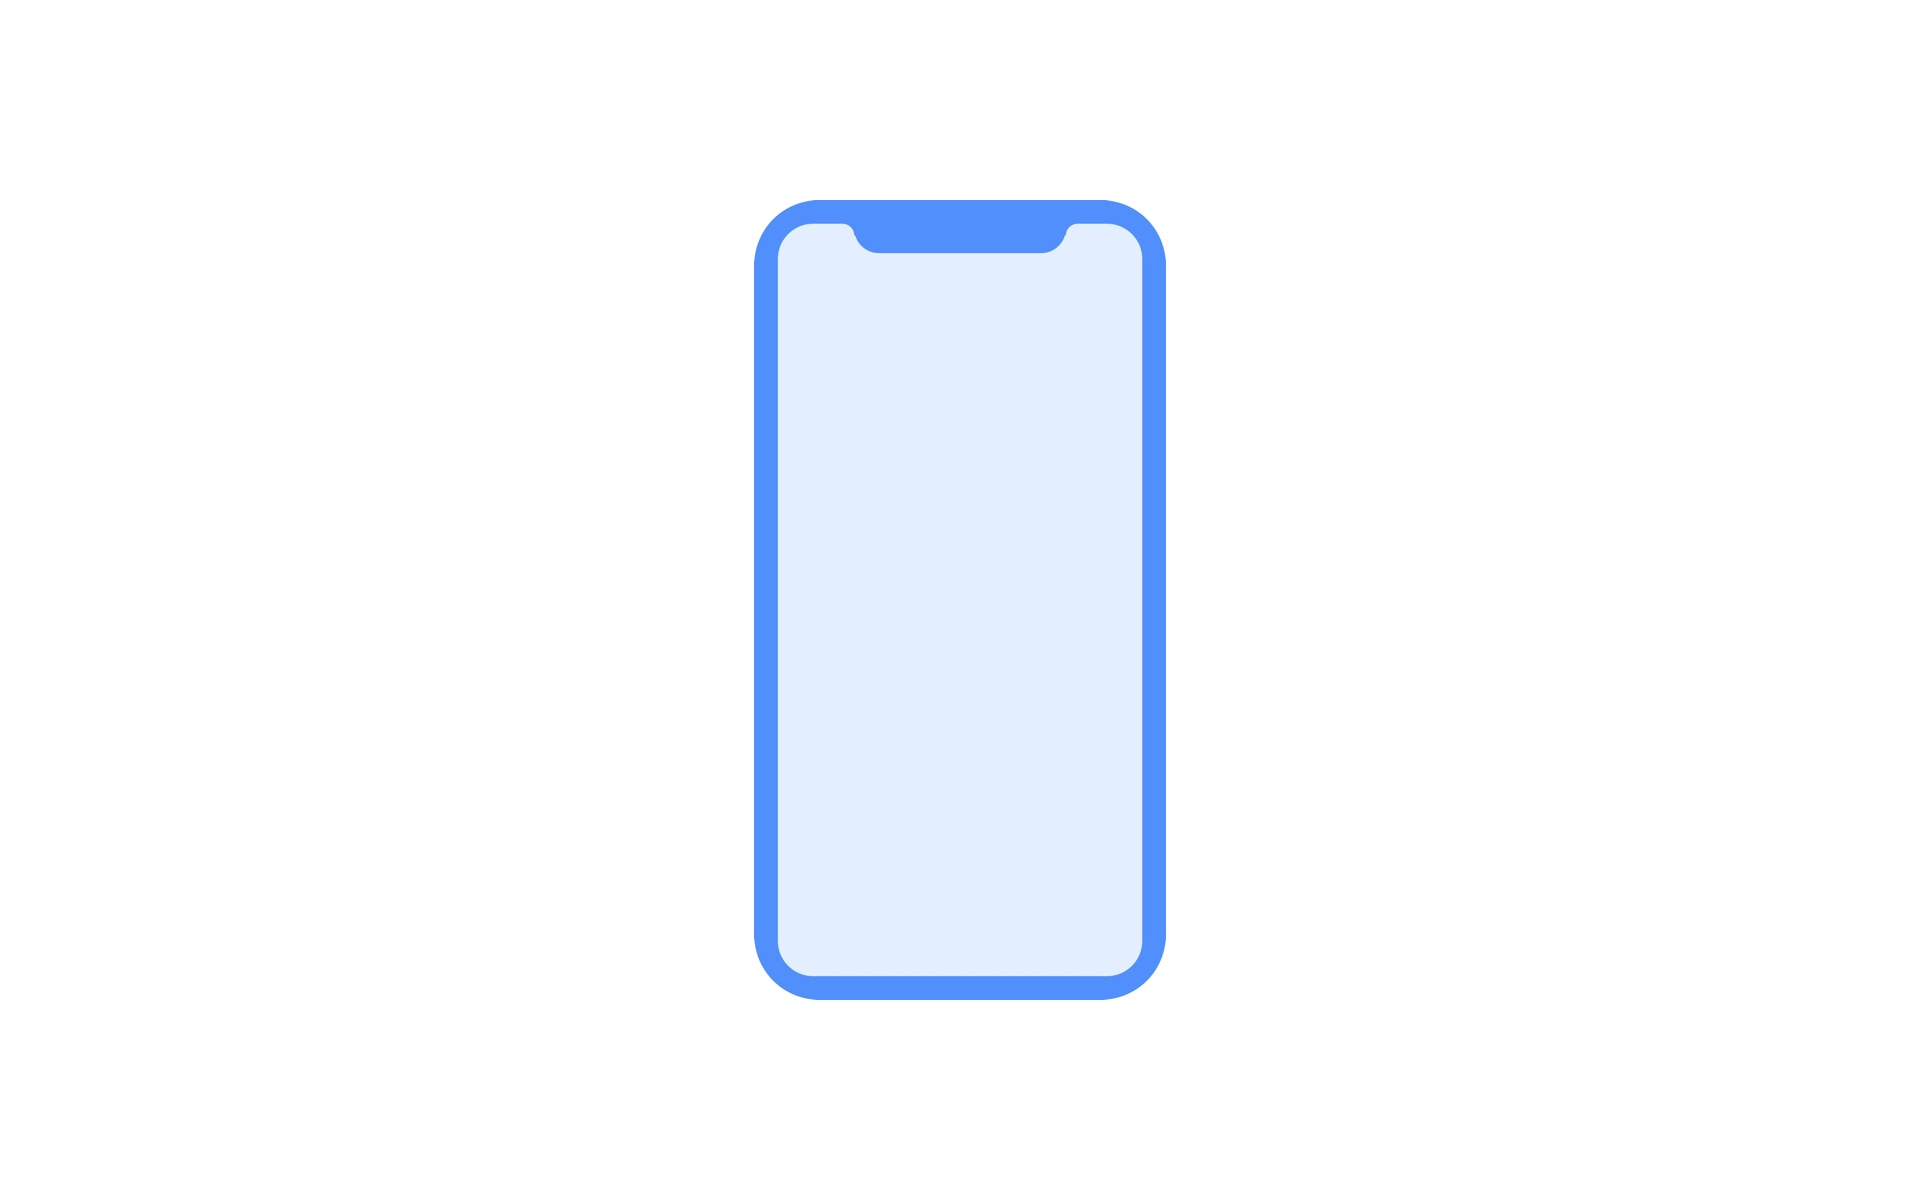 HomePod firmware reveals iPhone 8 design and facial recognition